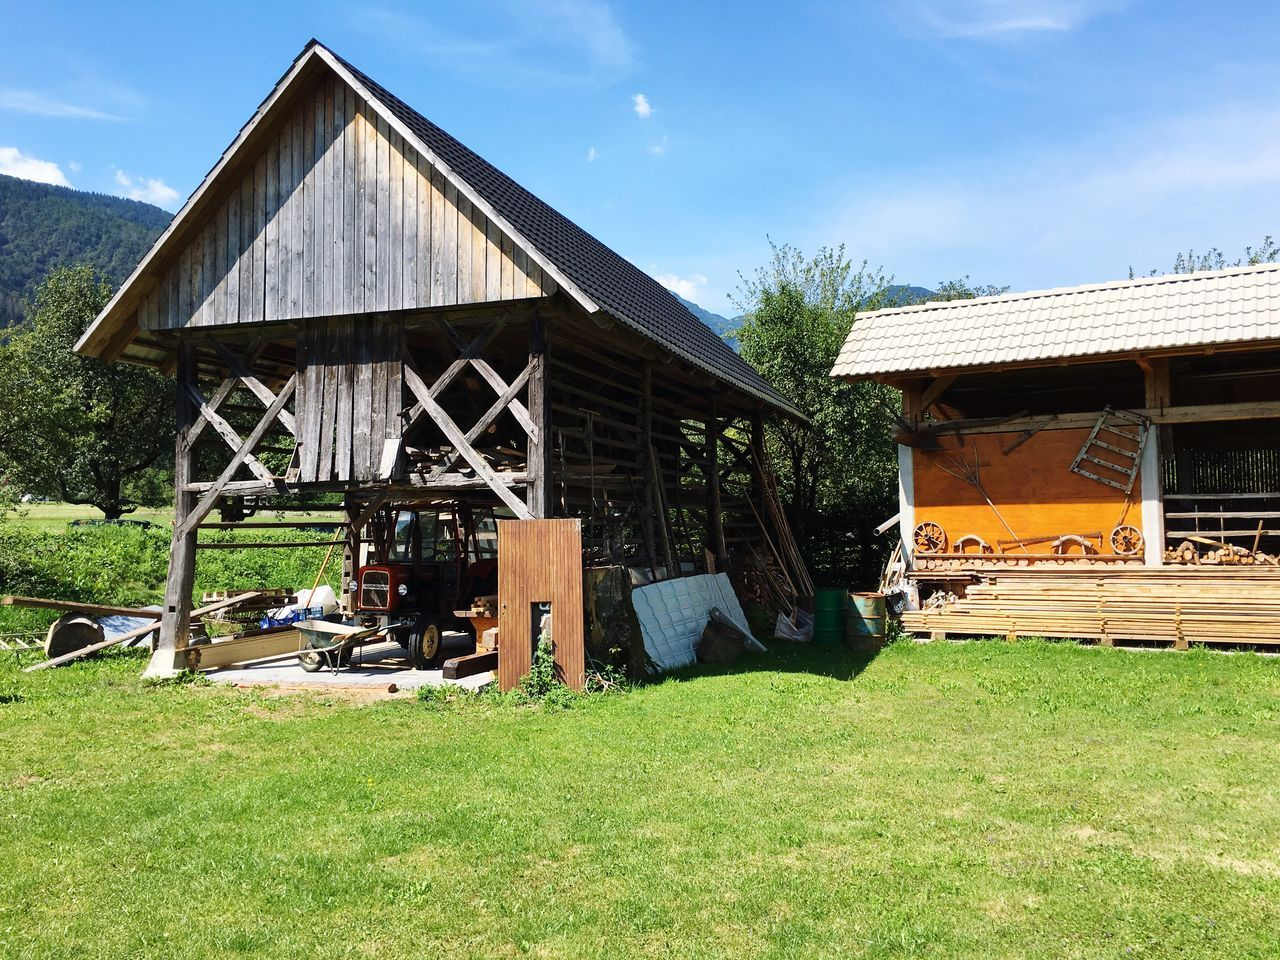 Green Grass Blue Sky Blue Sky Wood Store Wood Wooden Building Building Exterior Architecture Tools Mountains Rural Scene Idyllic Slovenia Alps Tractor Home Is Where The Art Is